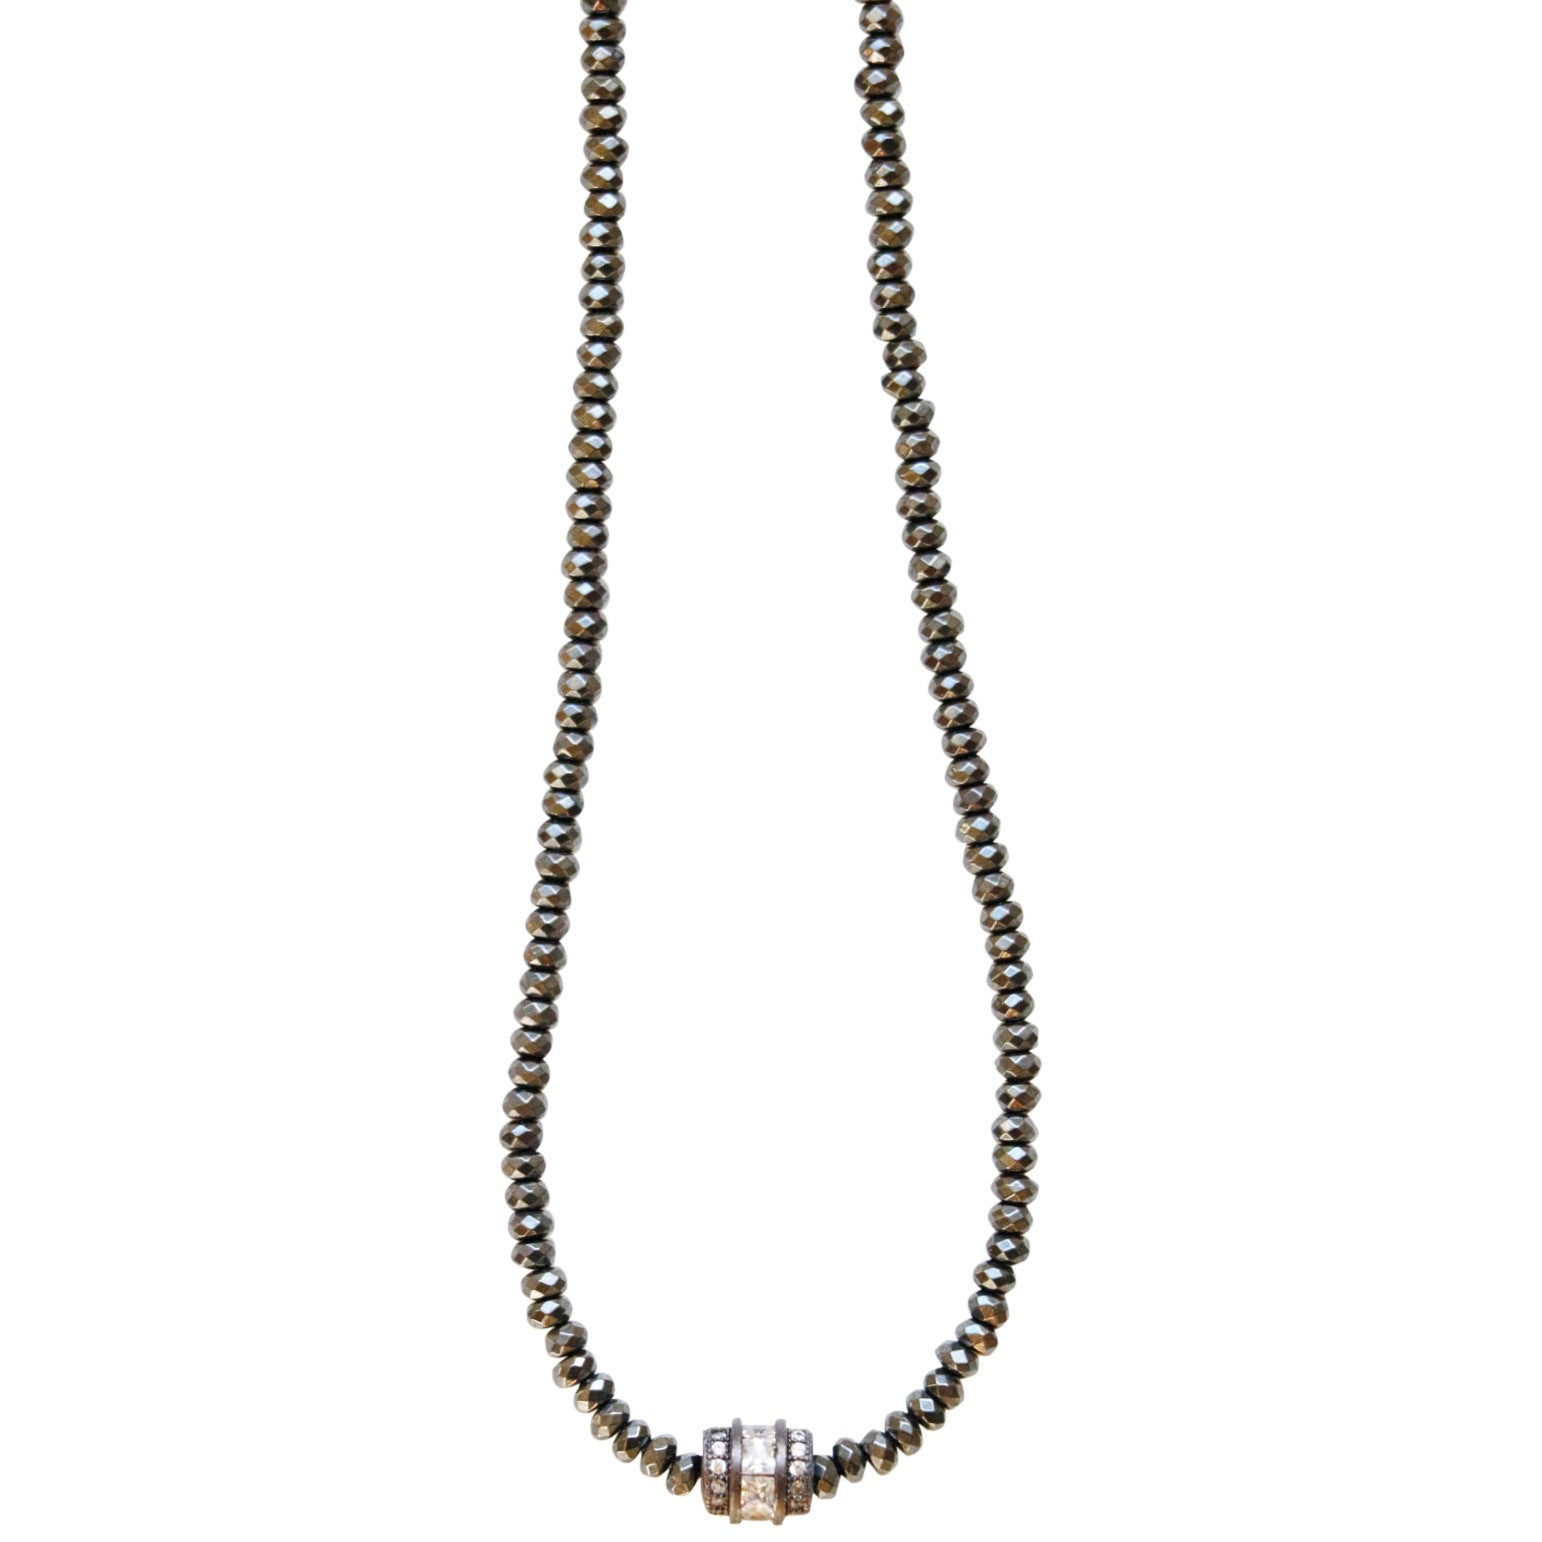 Molly Jane Designs Hematite + Pave Charm Choker, Hematite Bead Choker with Pave Cubic Zirconia Pendant with Gunmetal Accents